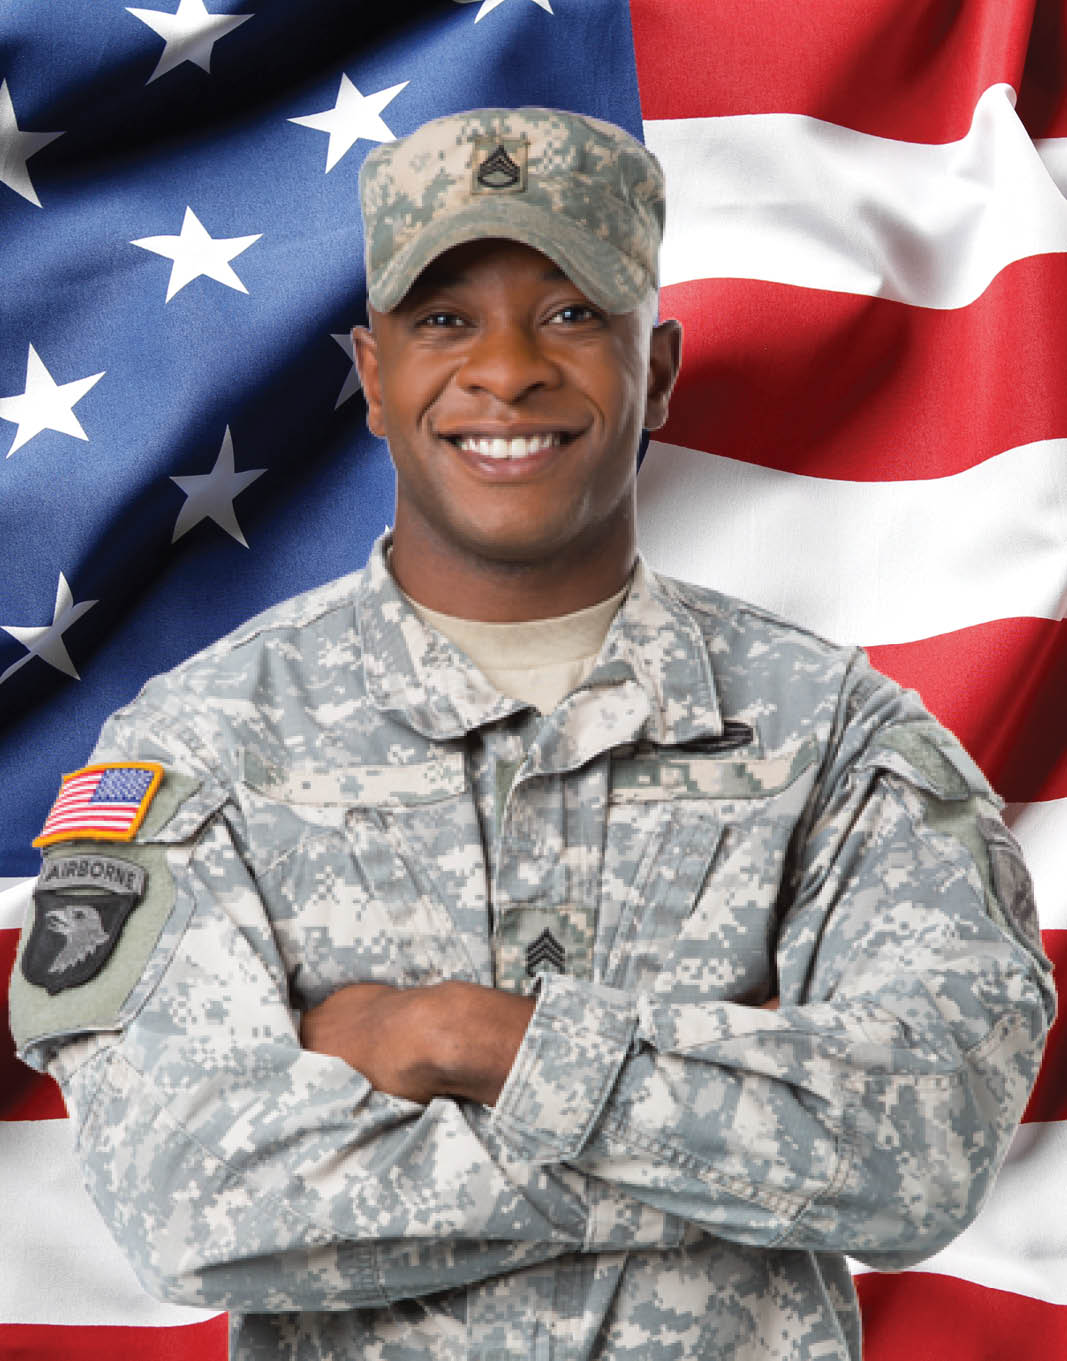 Our Consultants, U.S. Military Veterans